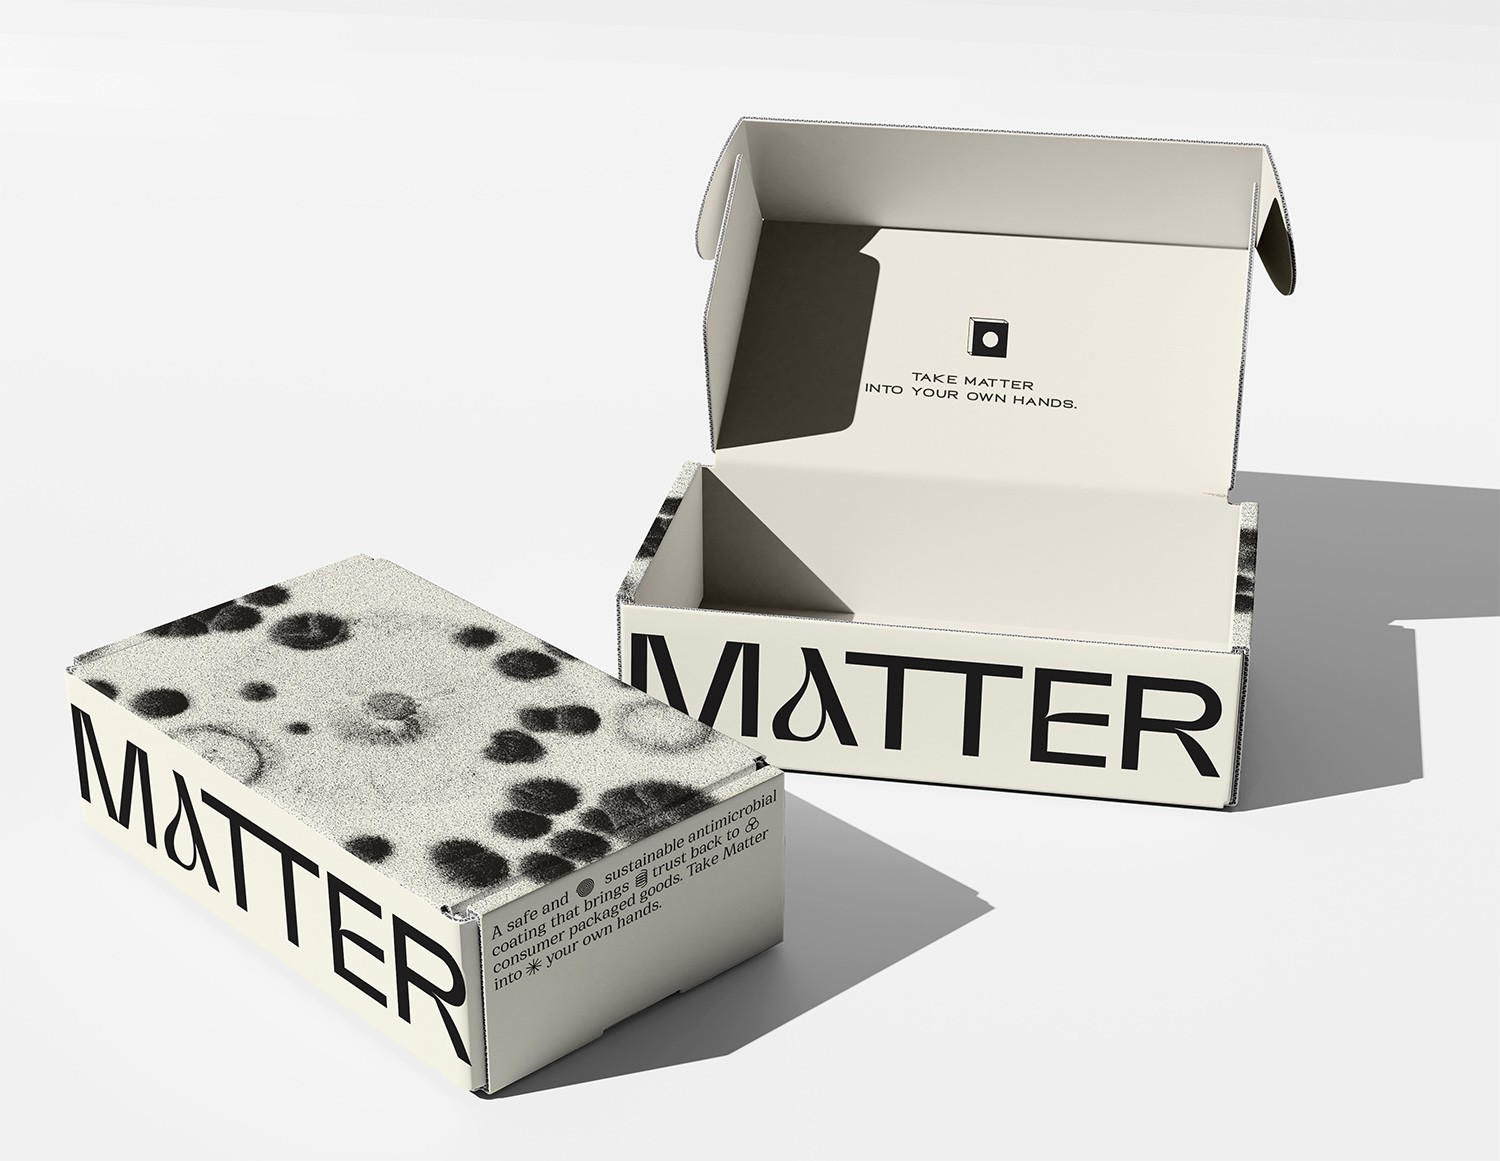 A MATTER of Innovative Packaging Design by Designsake Studio